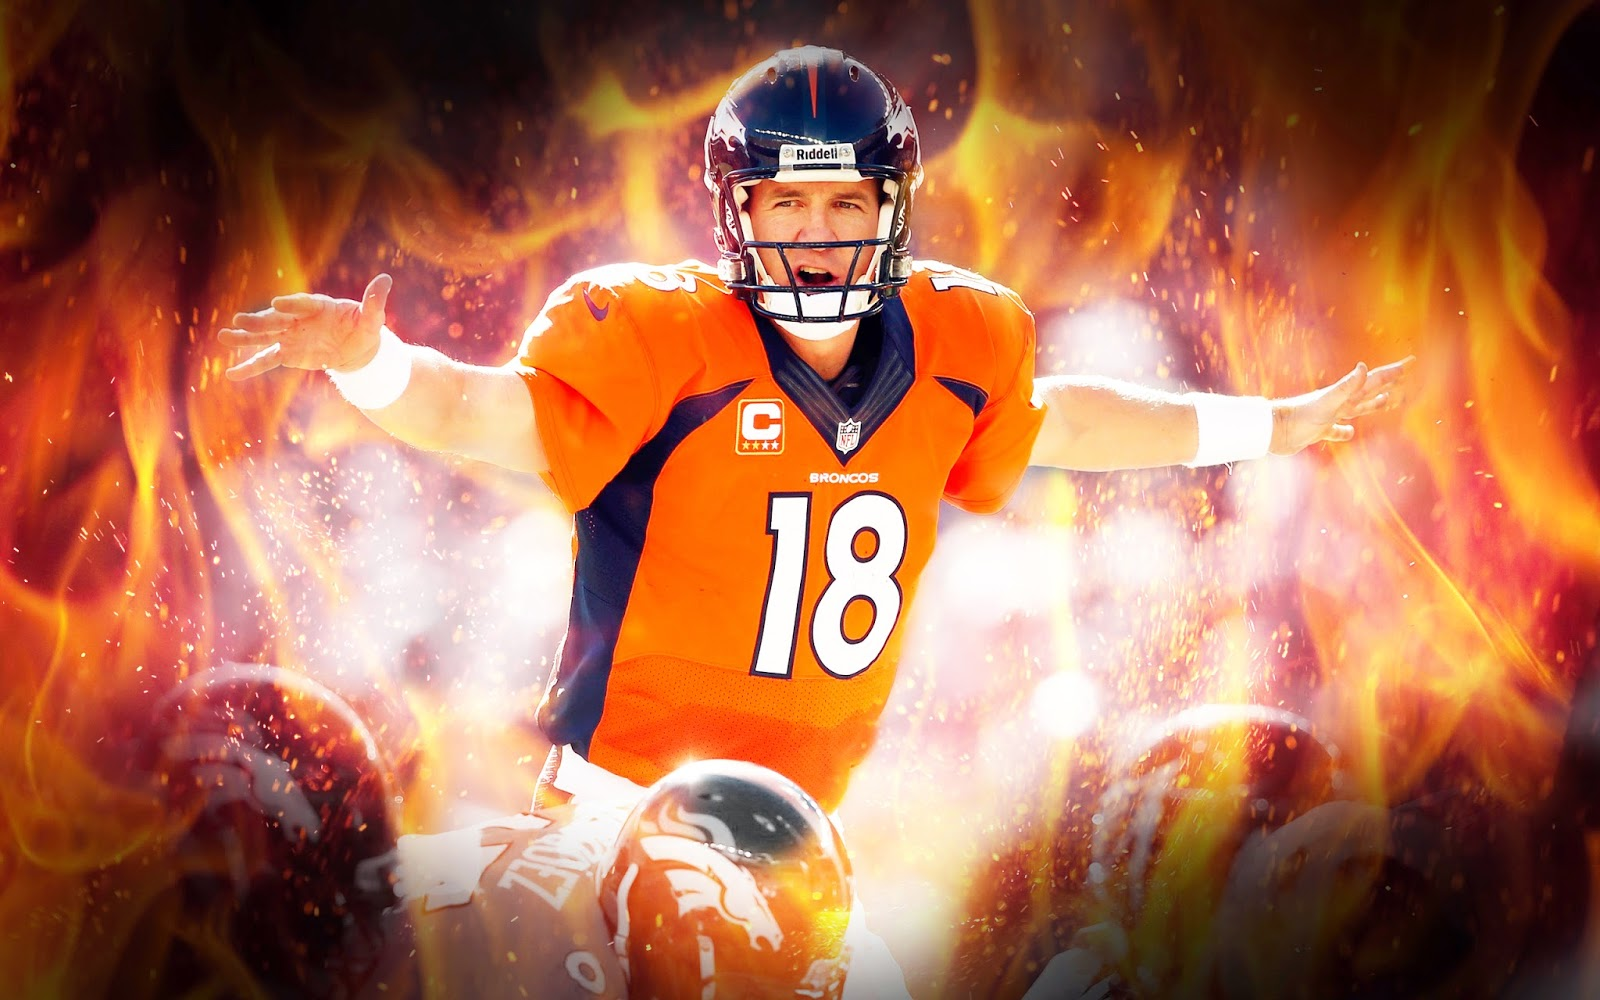 Illpapers sports highlights news videos wallpapers new peyton manning wallpaper broncos superbowl voltagebd Choice Image